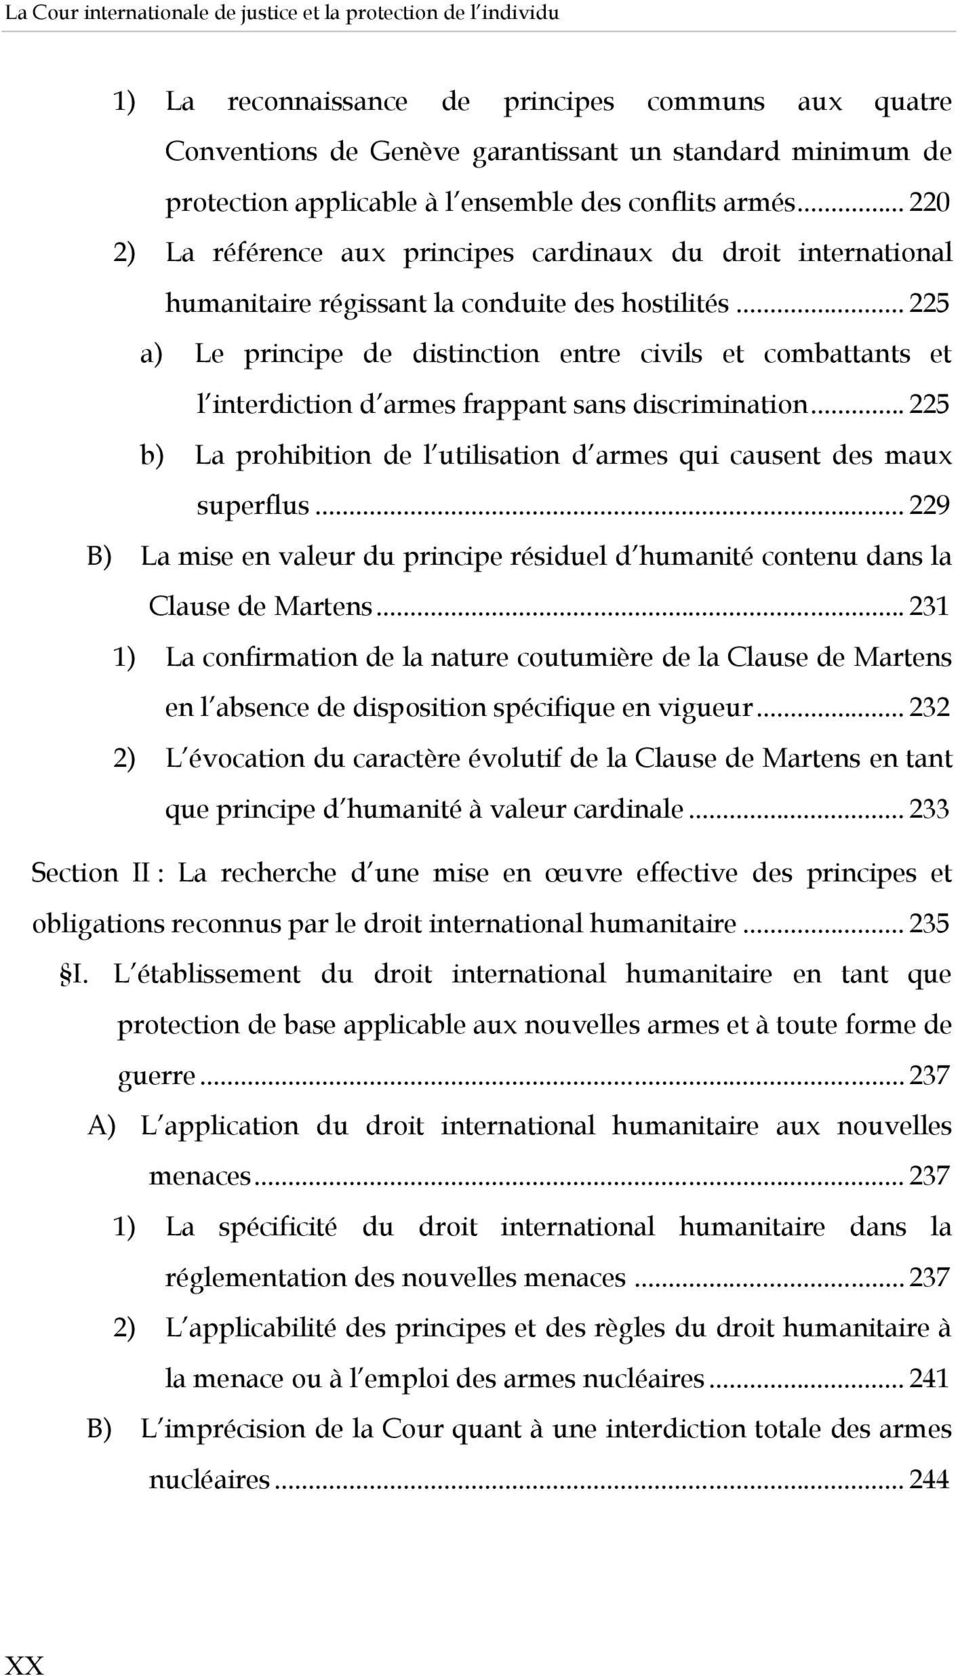 .. 225 a) Le principe de distinction entre civils et combattants et l interdiction d armes frappant sans discrimination... 225 b) La prohibition de l utilisation d armes qui causent des maux superflus.